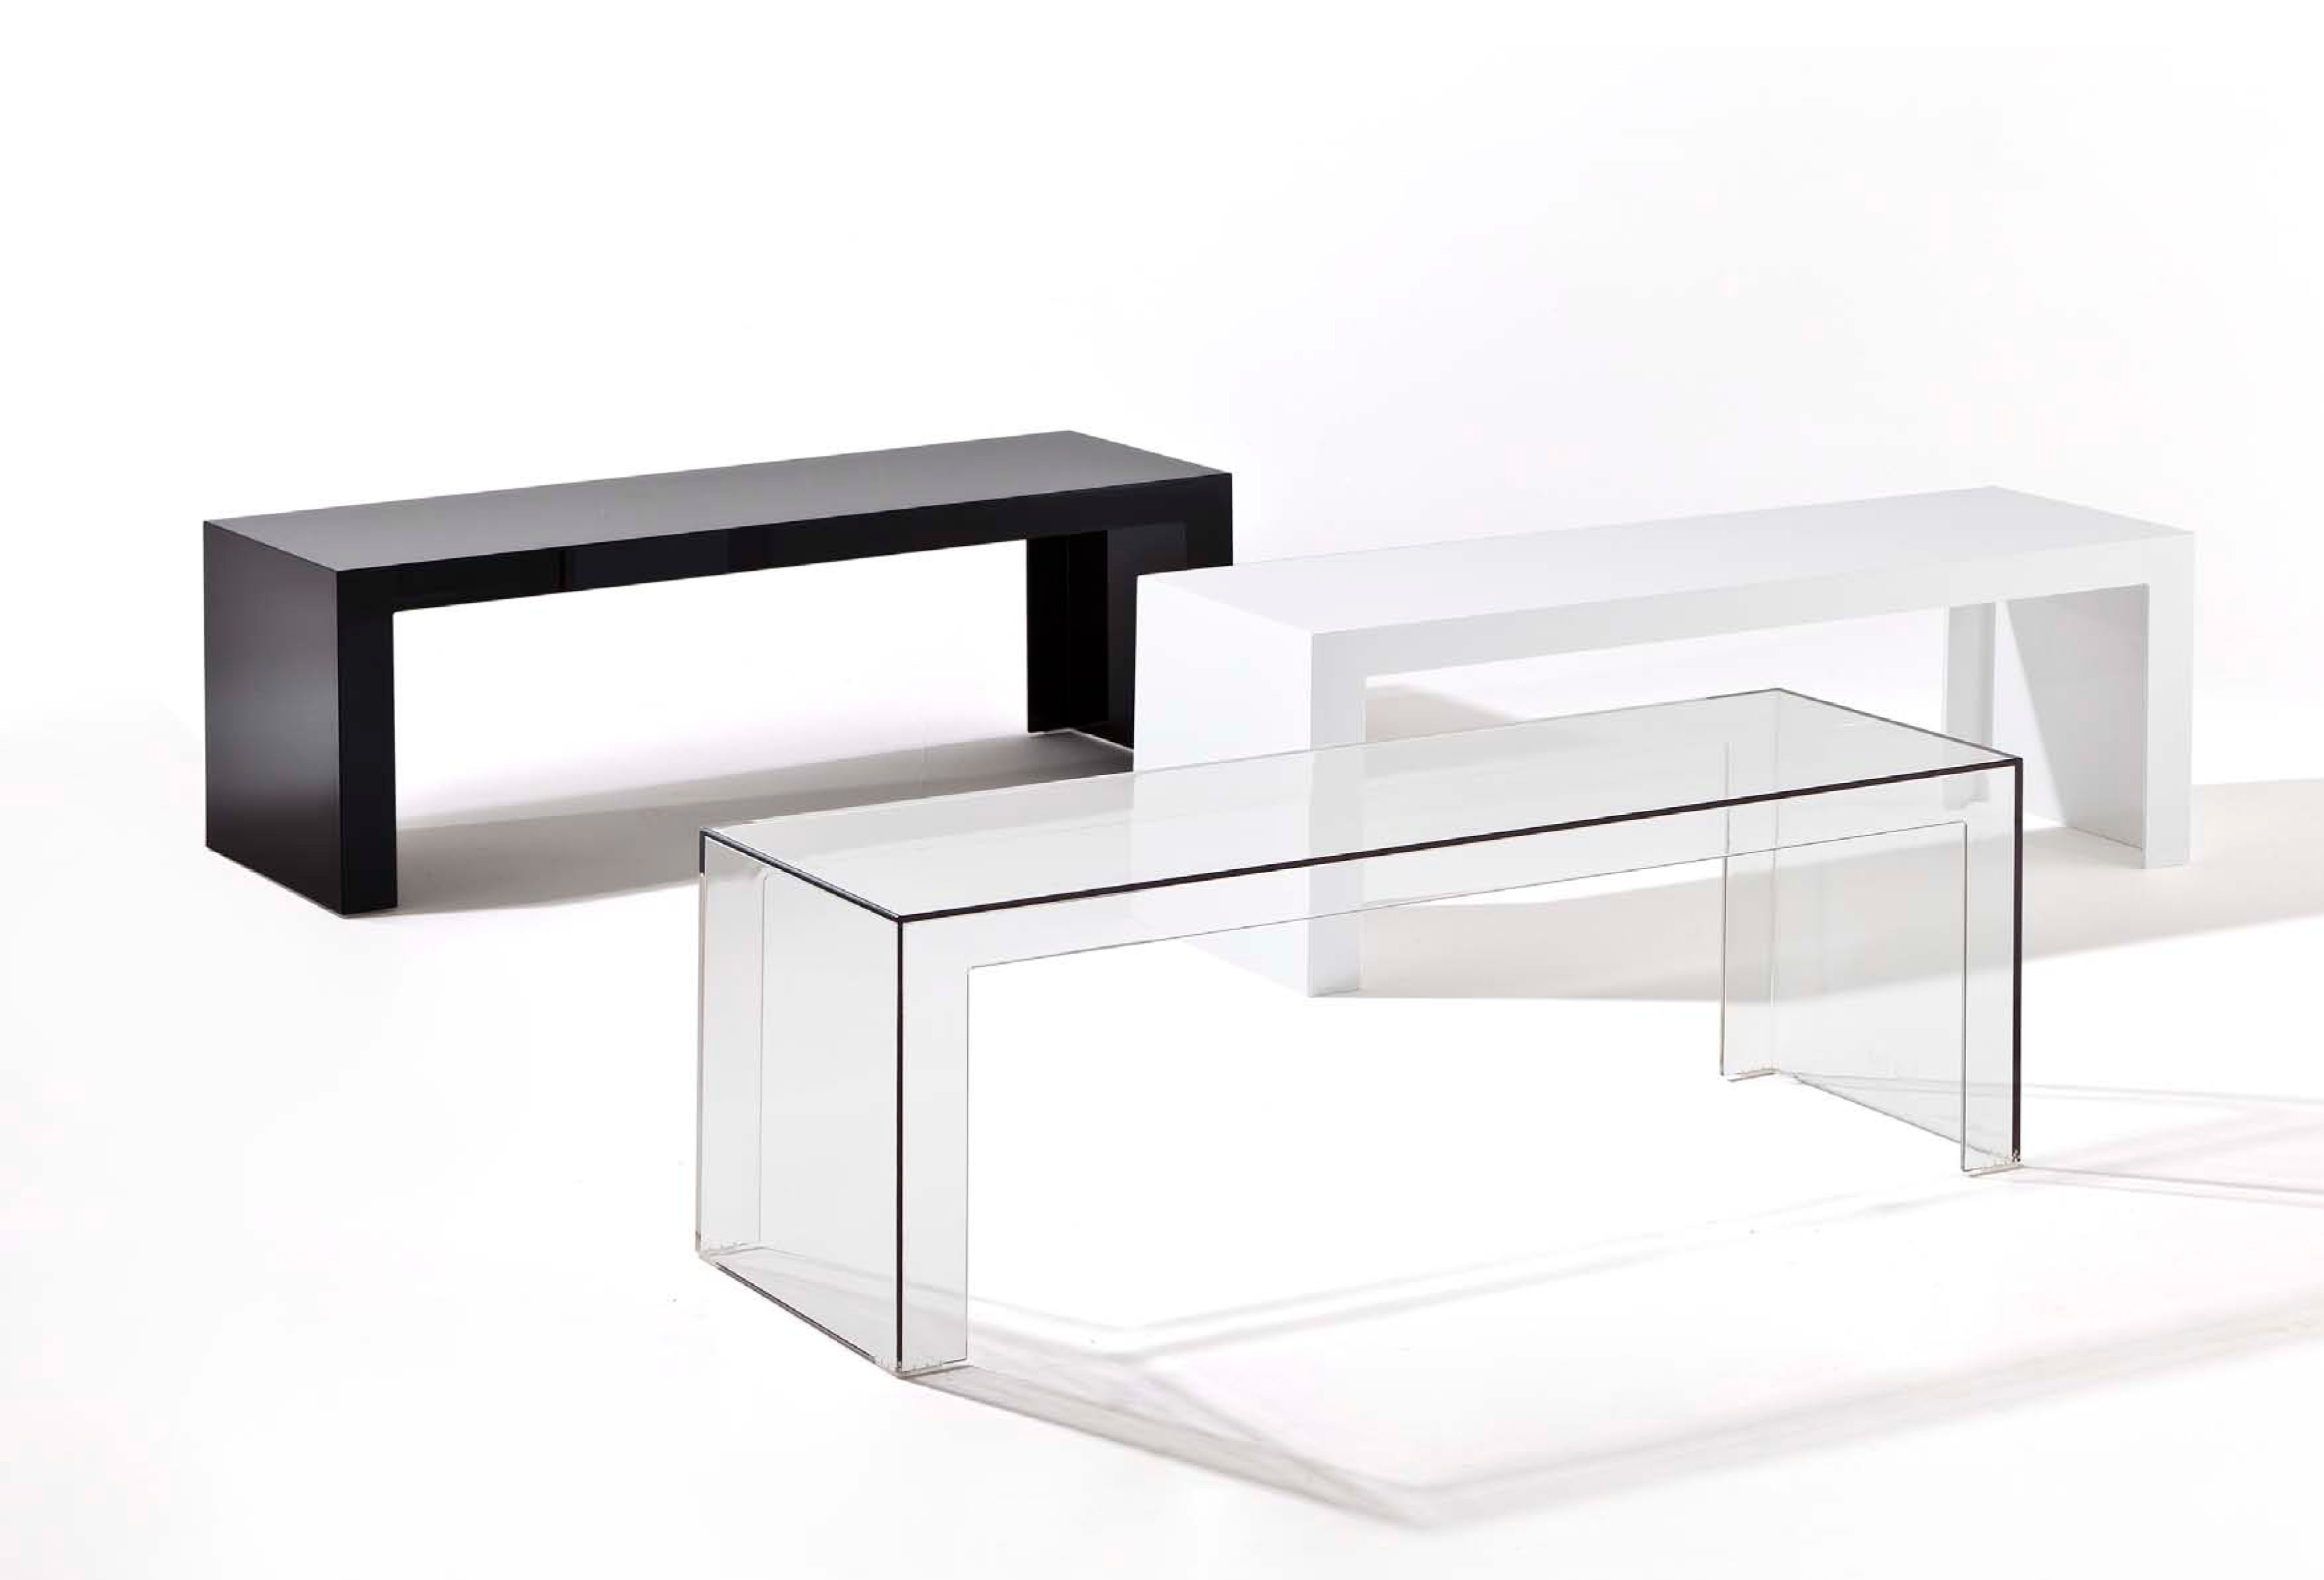 Meuble Tv Kartell Console Basse Invisibles Side L 120 X H 40 Cm Cristal